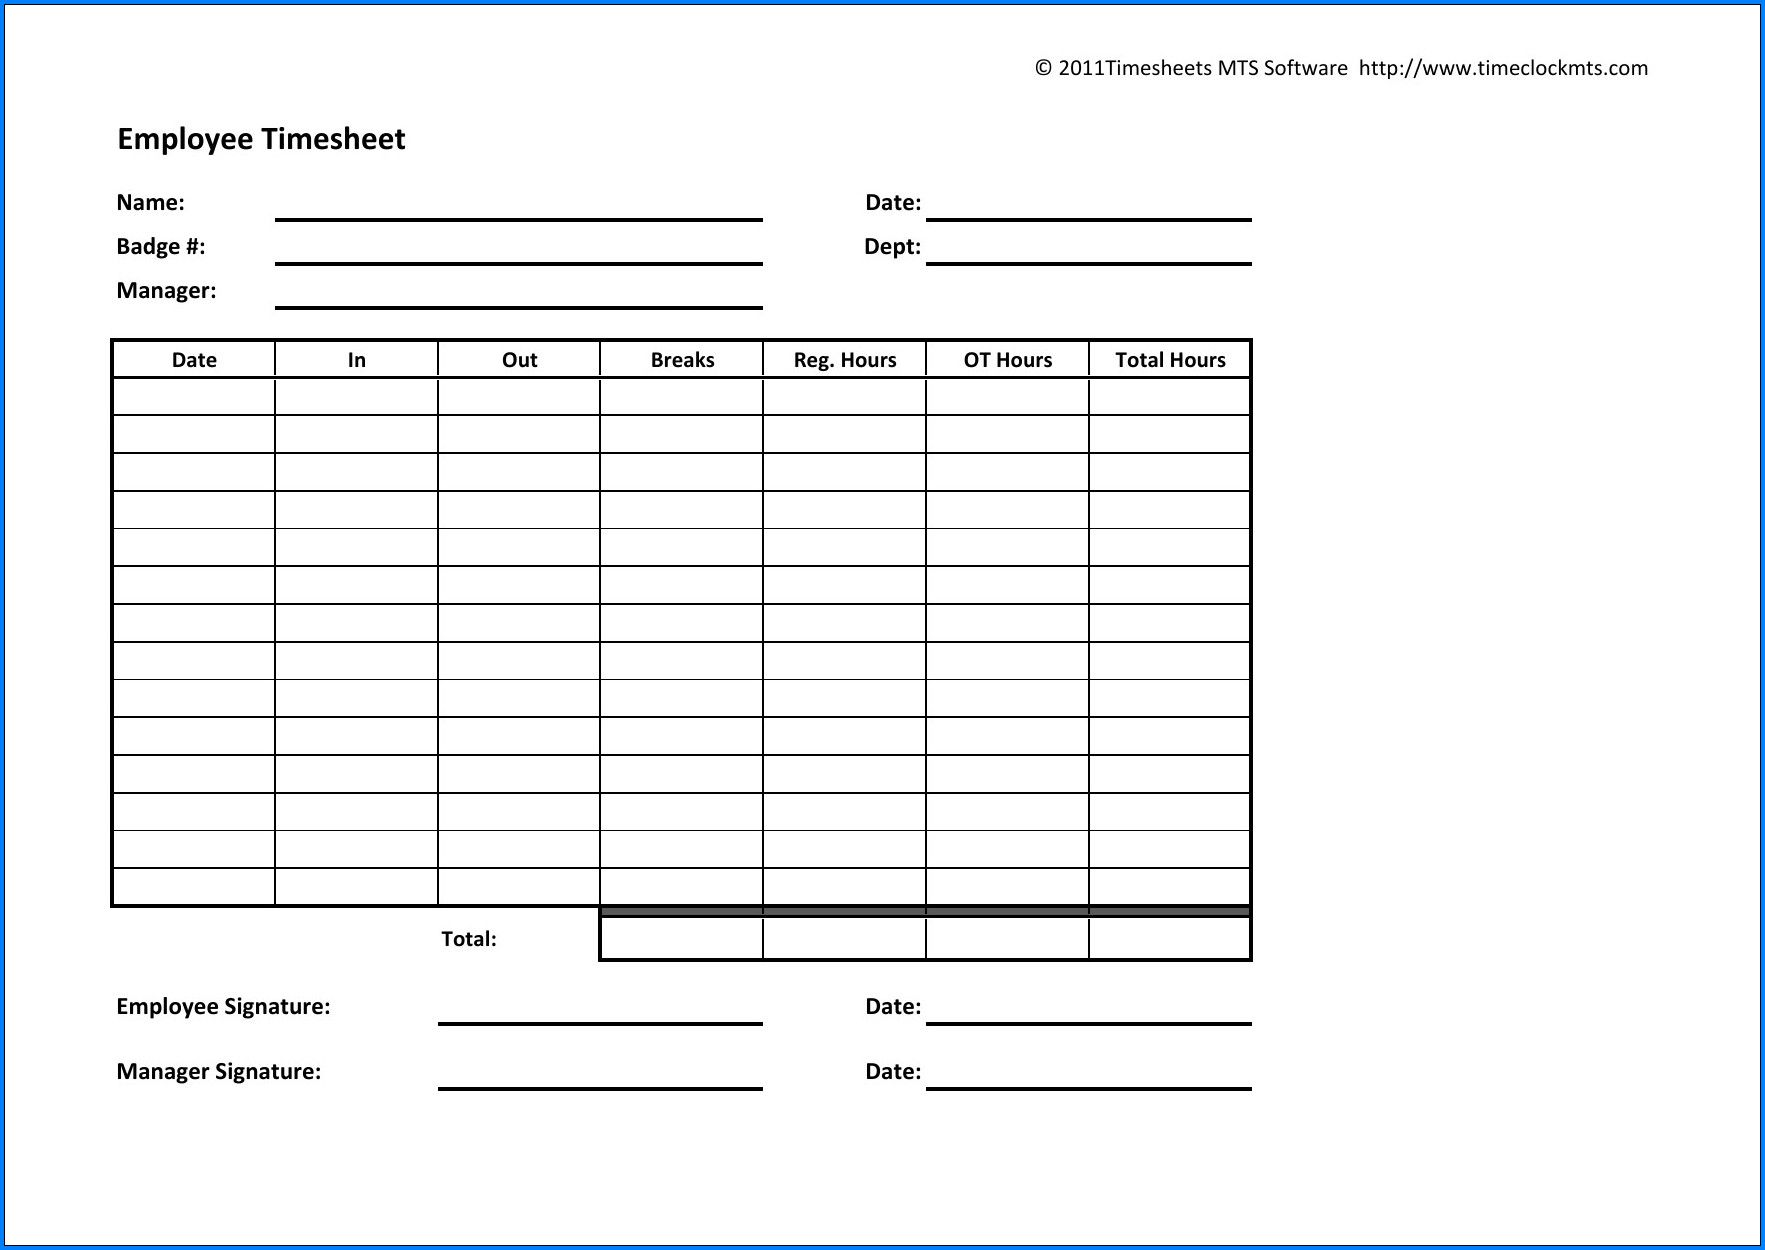 003 Archaicawful Employee Time Card Printable Idea  Timesheet Template Excel Free Multiple SheetFull